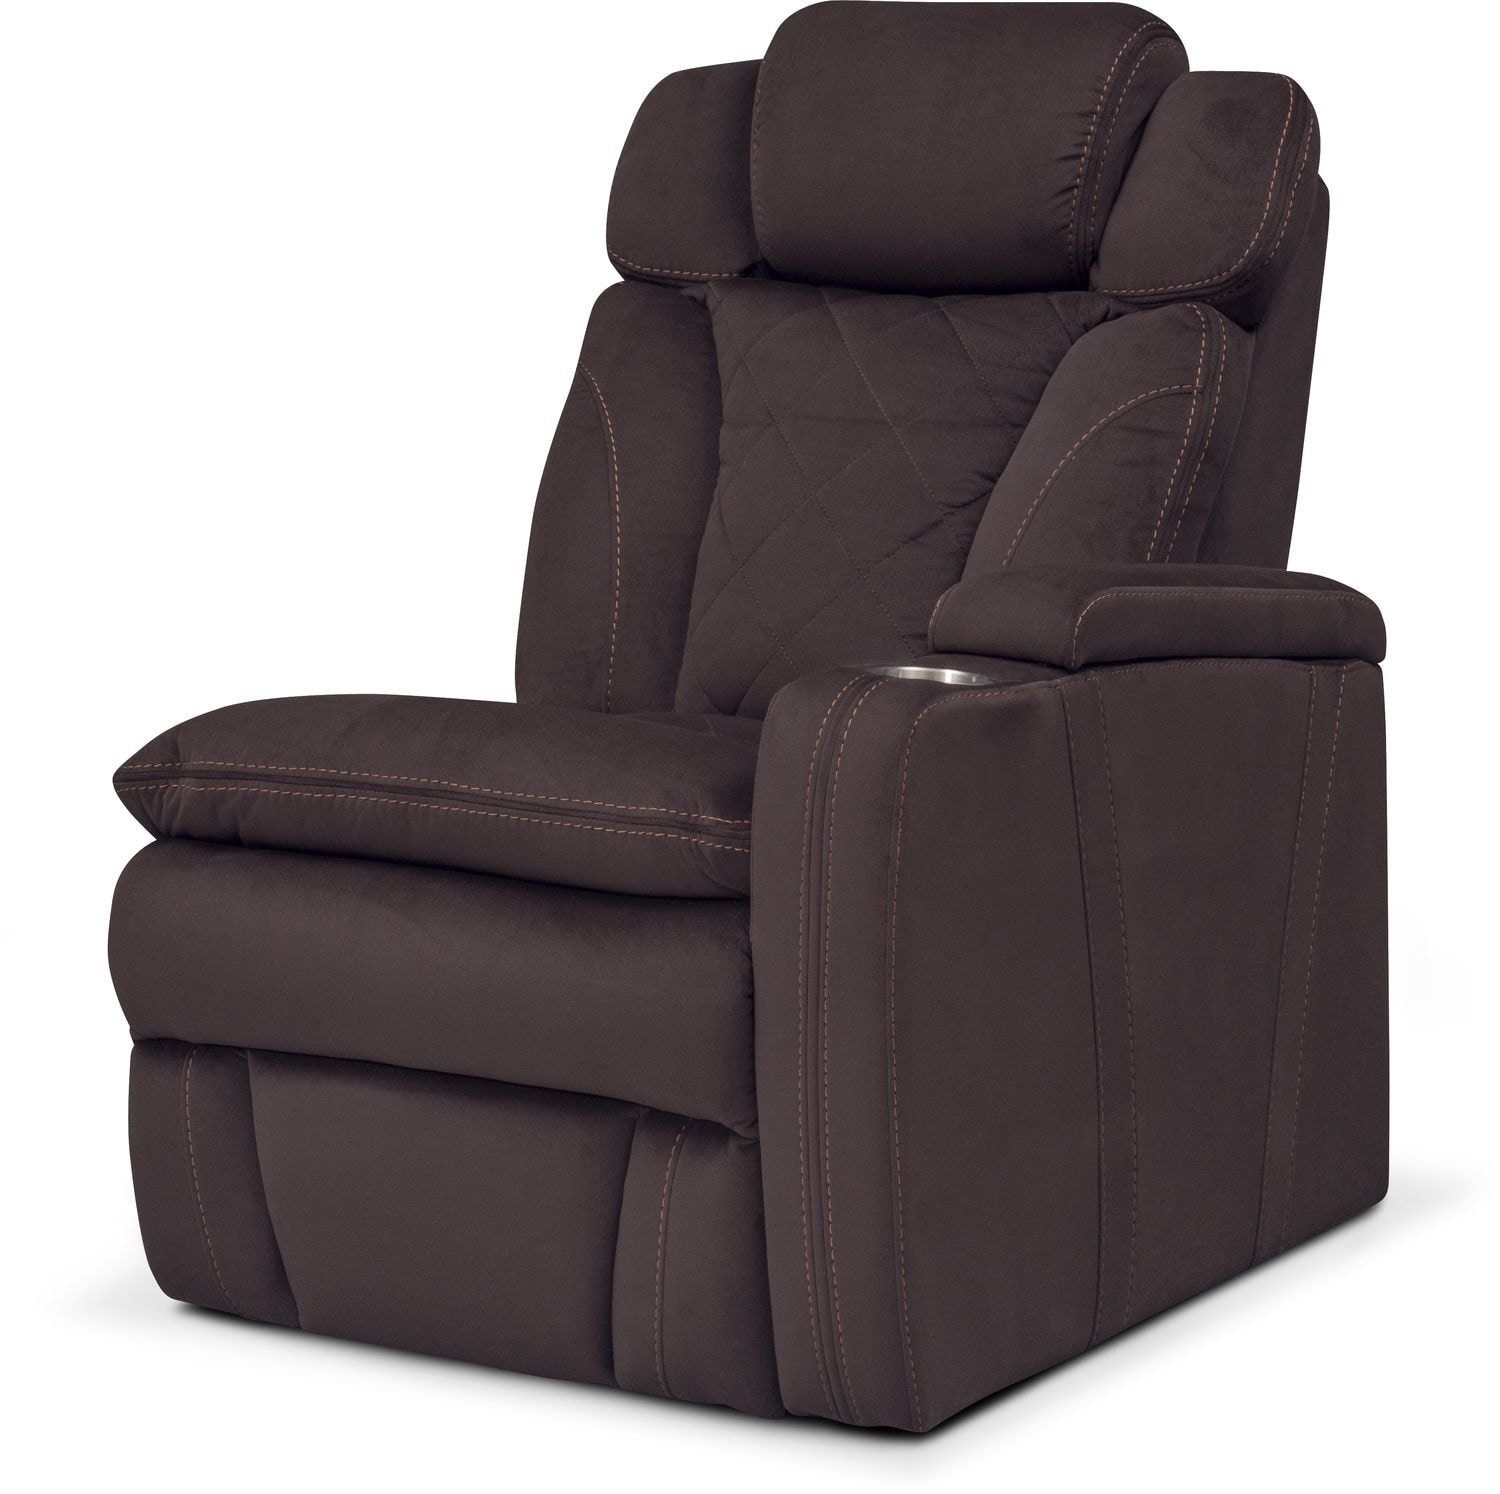 Living Room Furniture - Fiero Right-Facing Power Recliner - Godiva